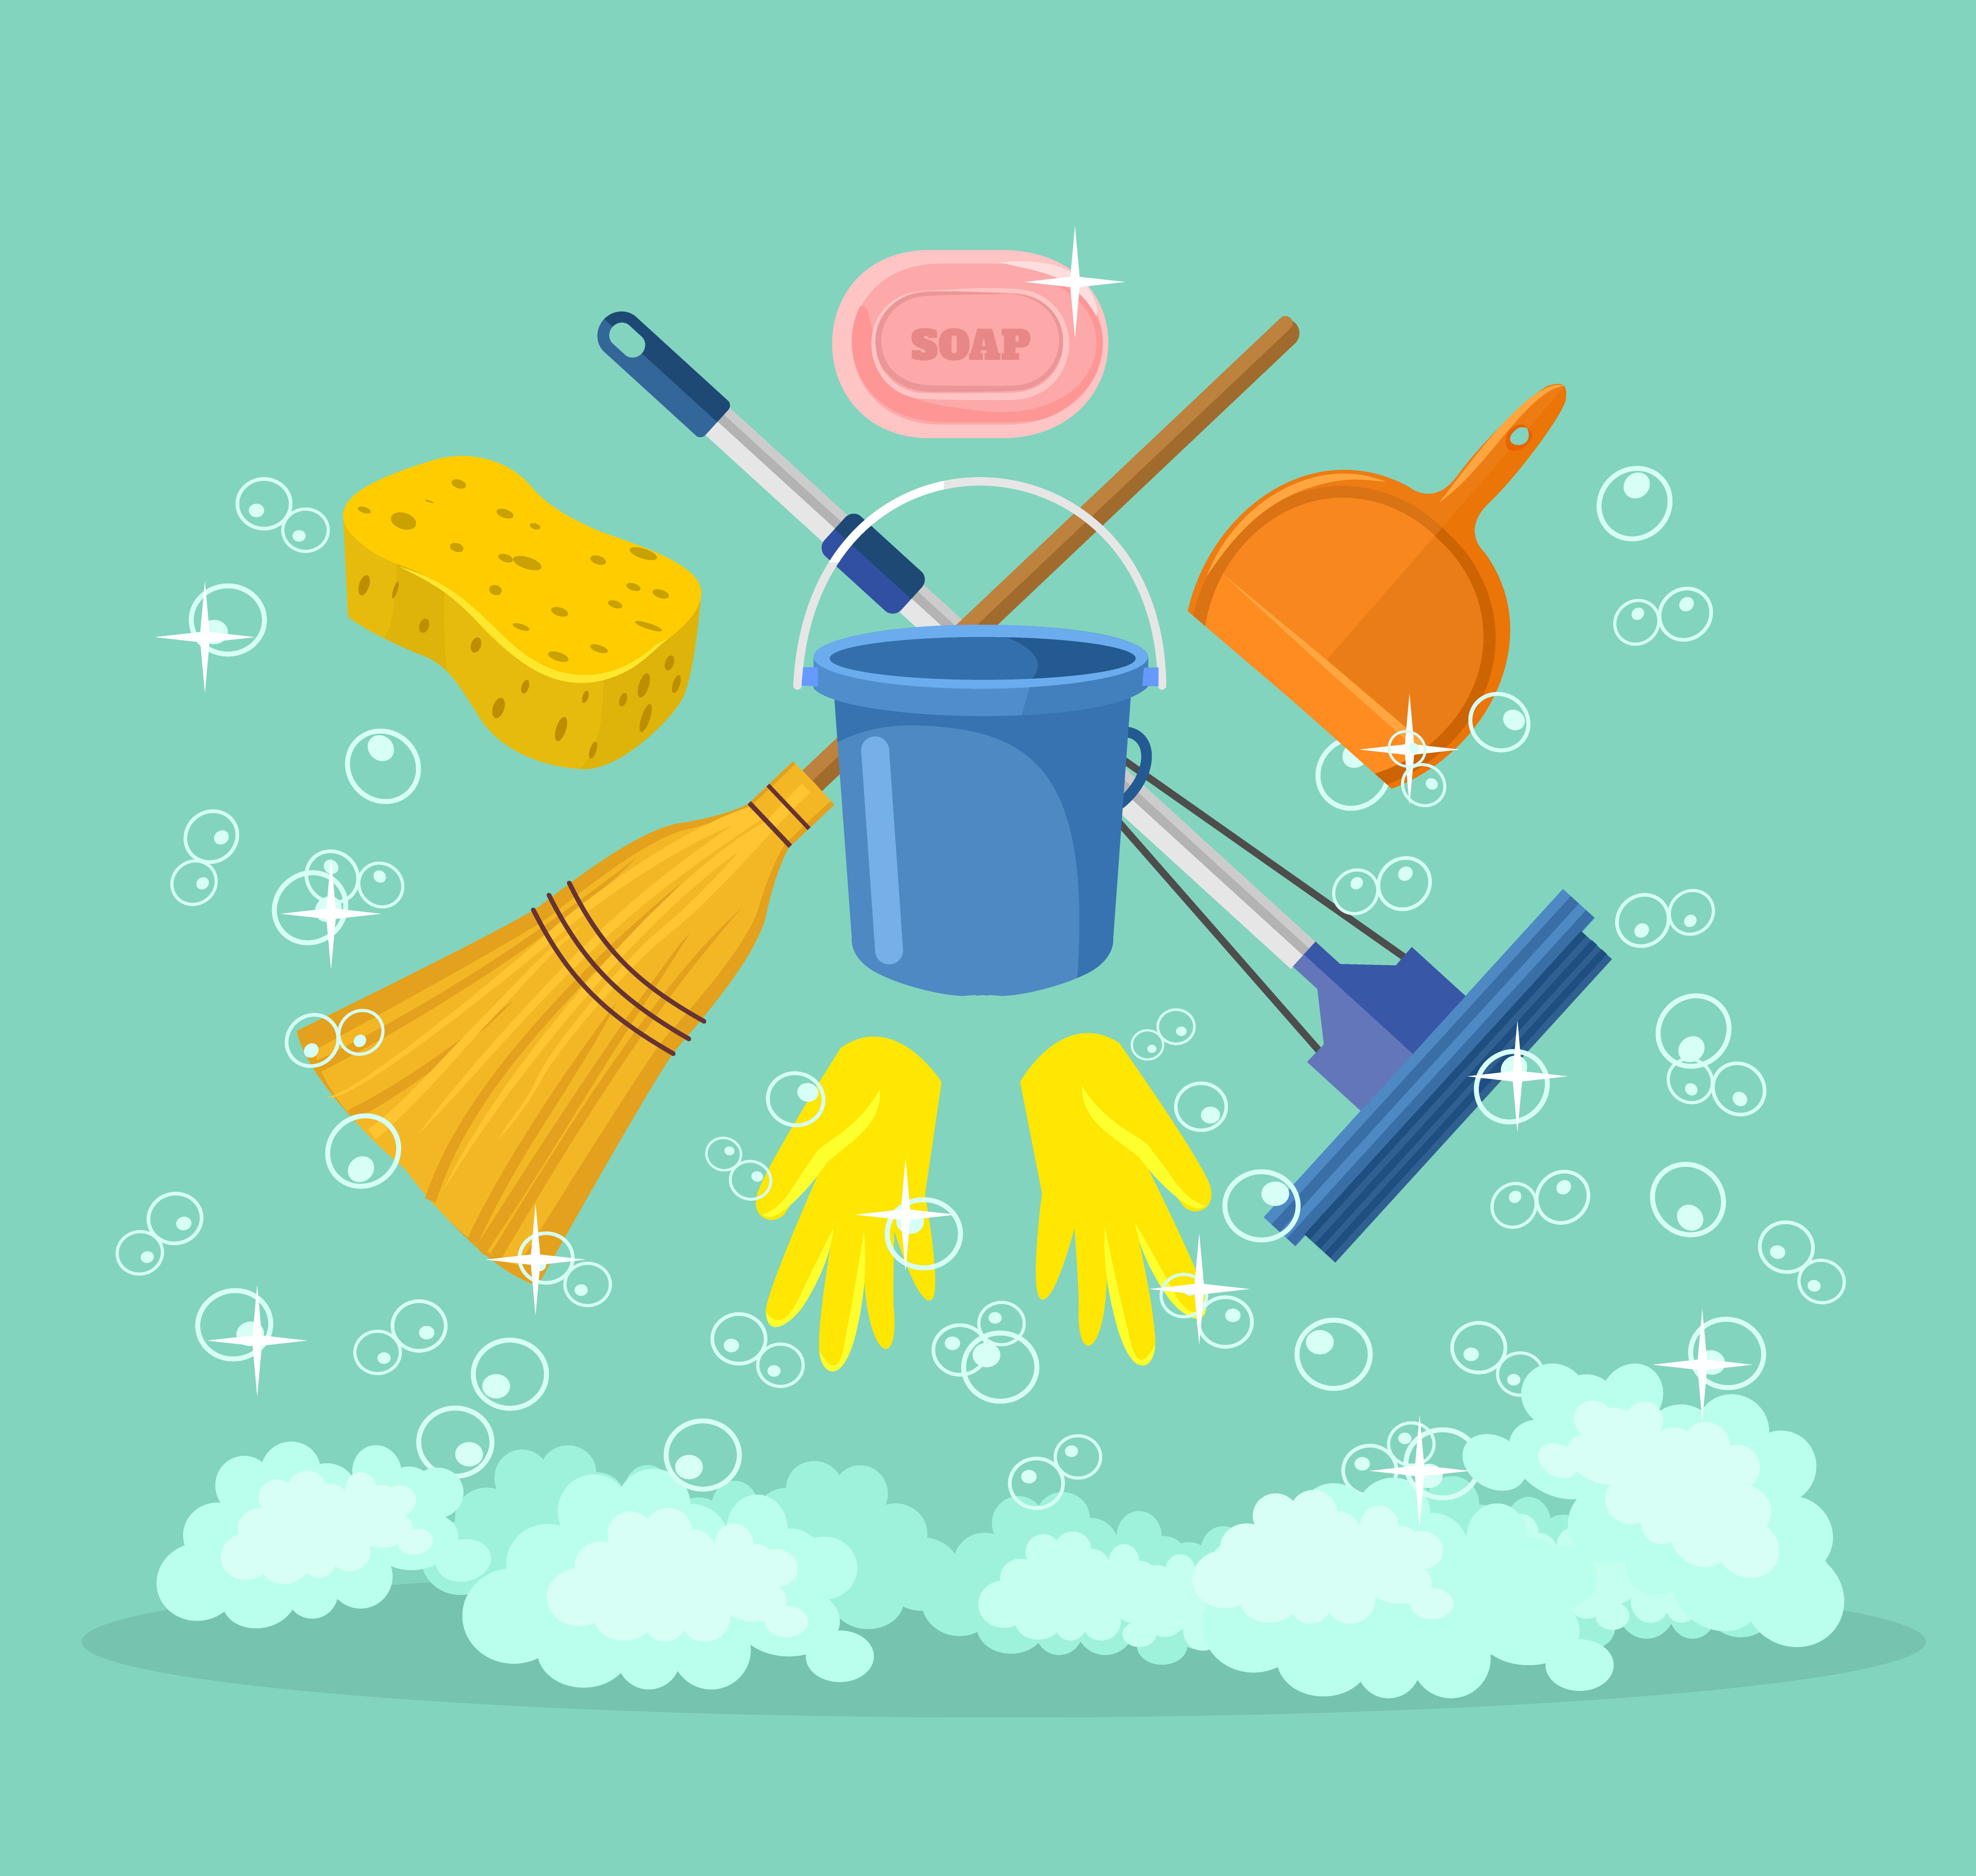 vector image of cleaning supplies